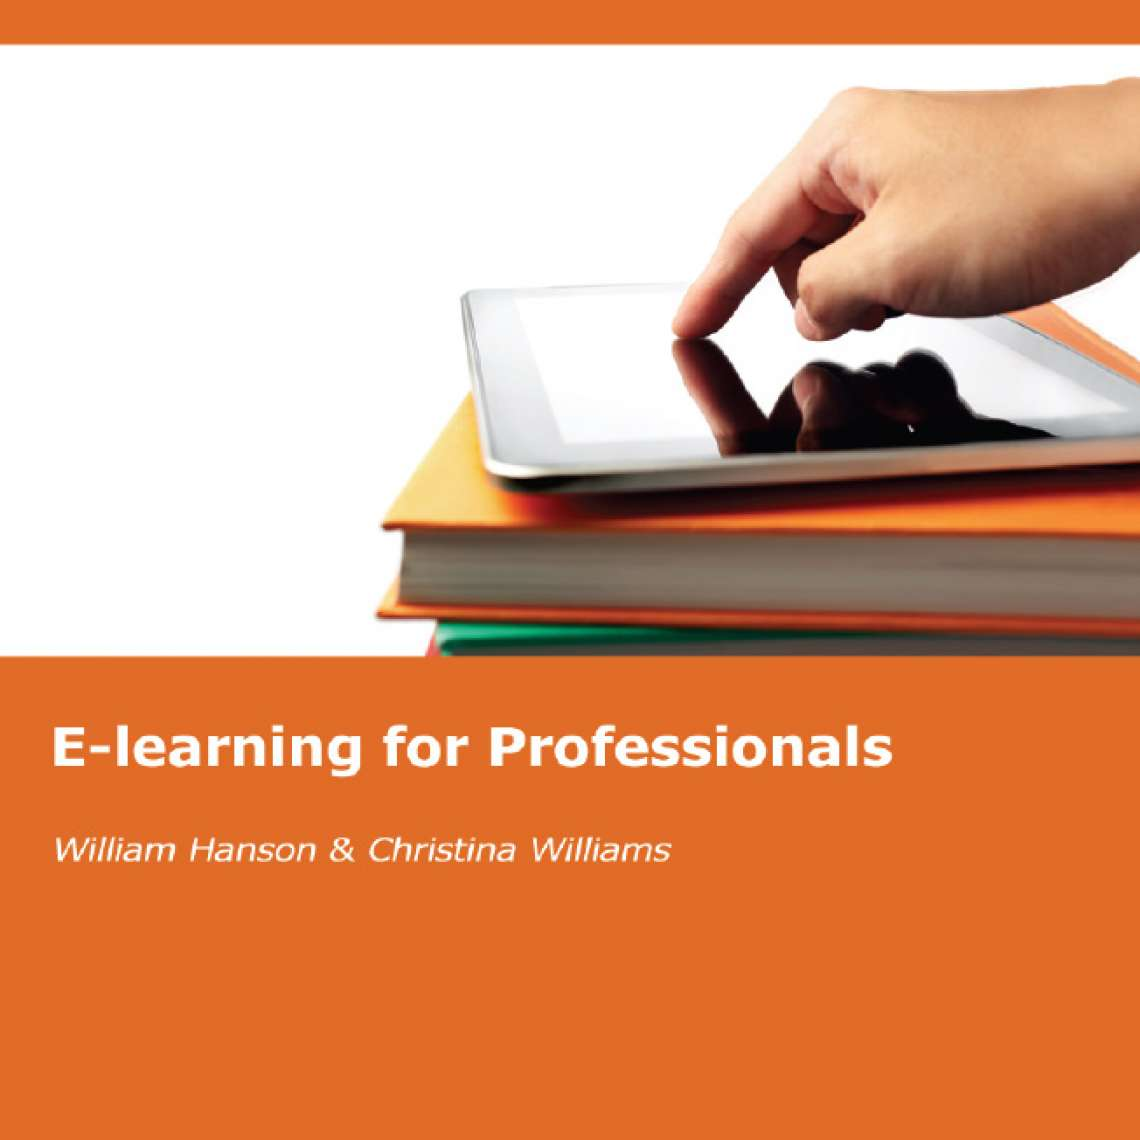 E-learning for Professionals (2012)